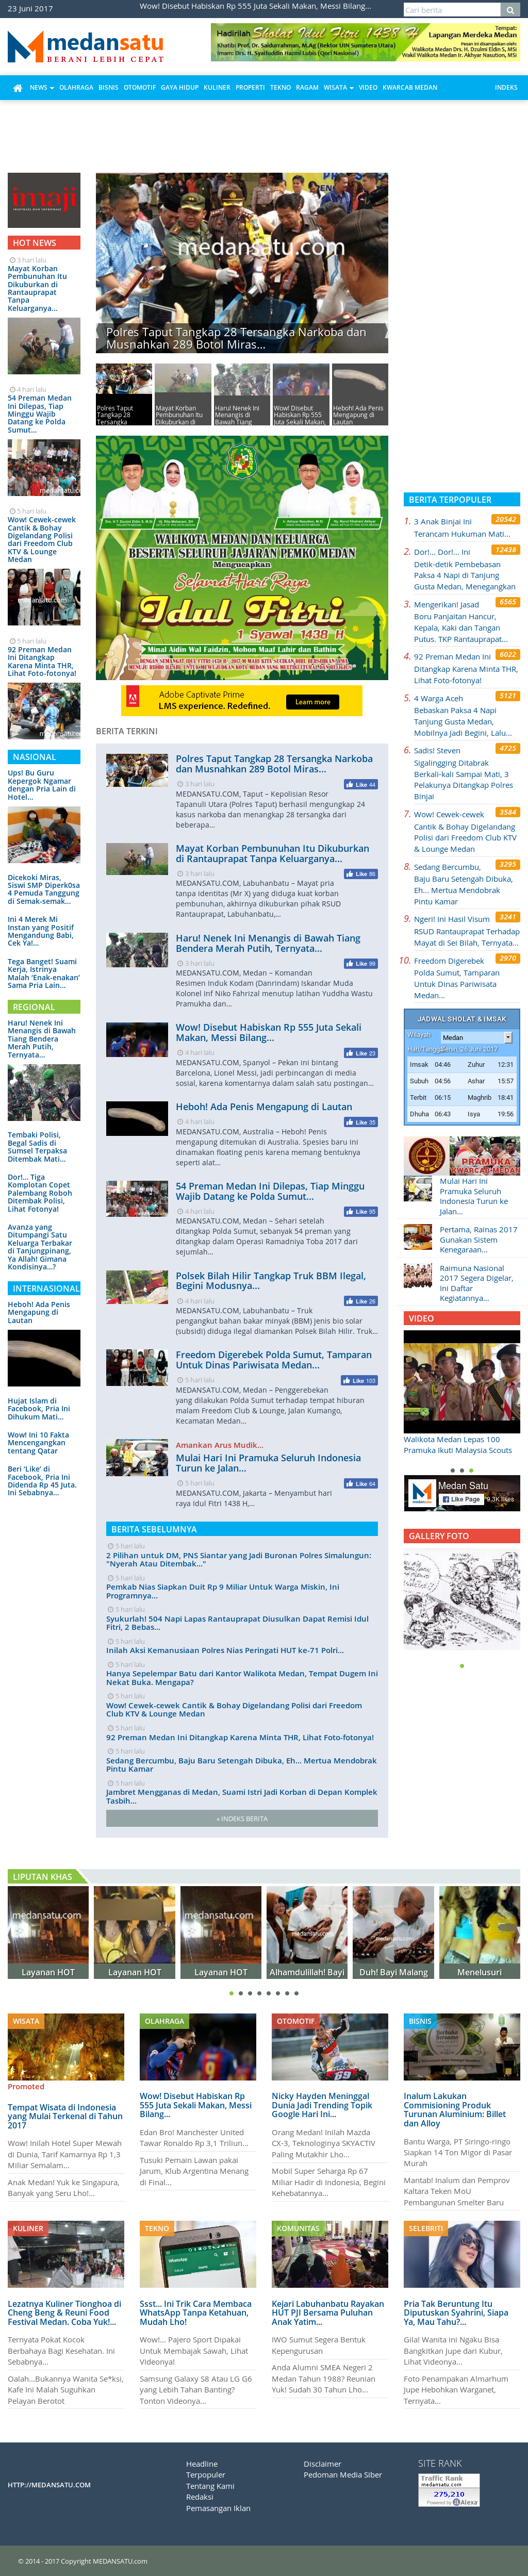 Medan Satu S Competitors Revenue Number Of Employees Funding Acquisitions News Owler Company Profile